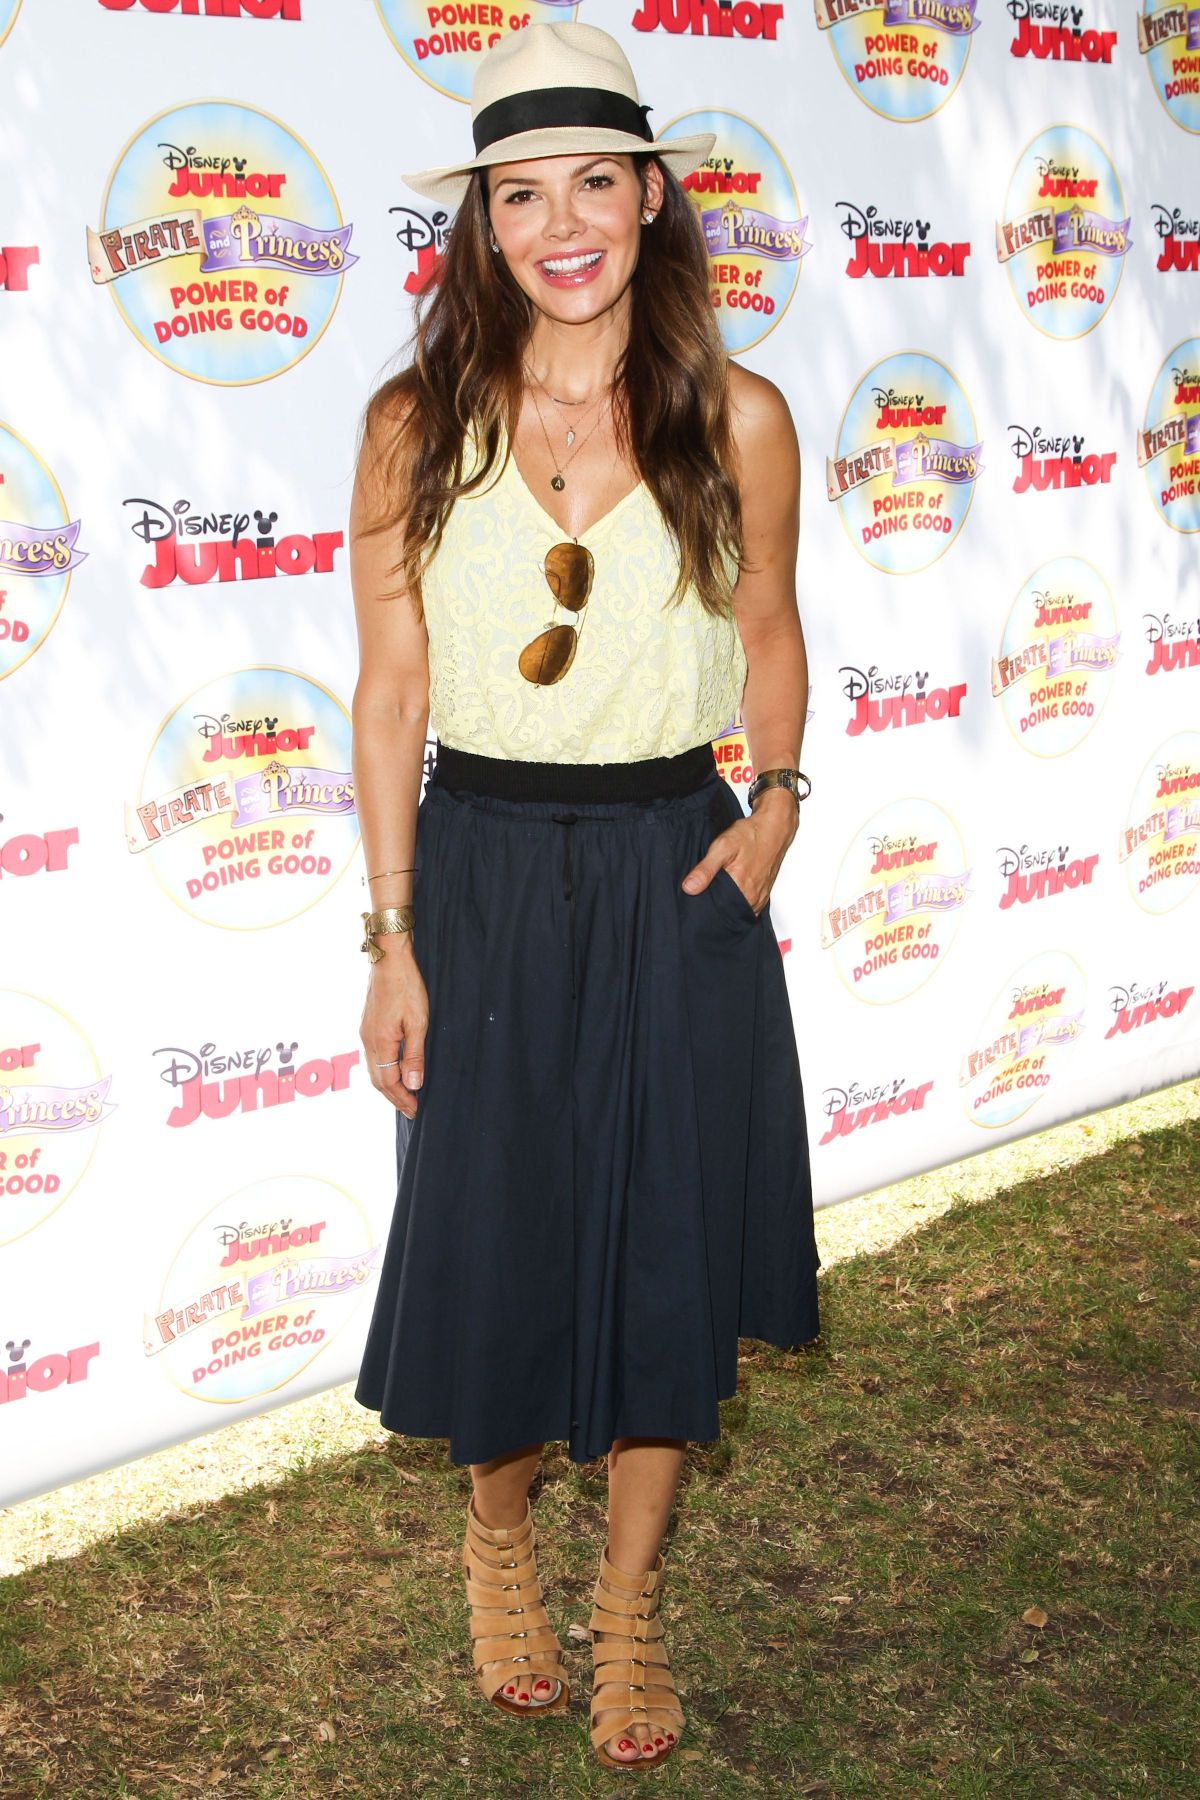 ALI LANDRY at Pirate and Princess: Power of Doing Good Tour in Pasadena 1608